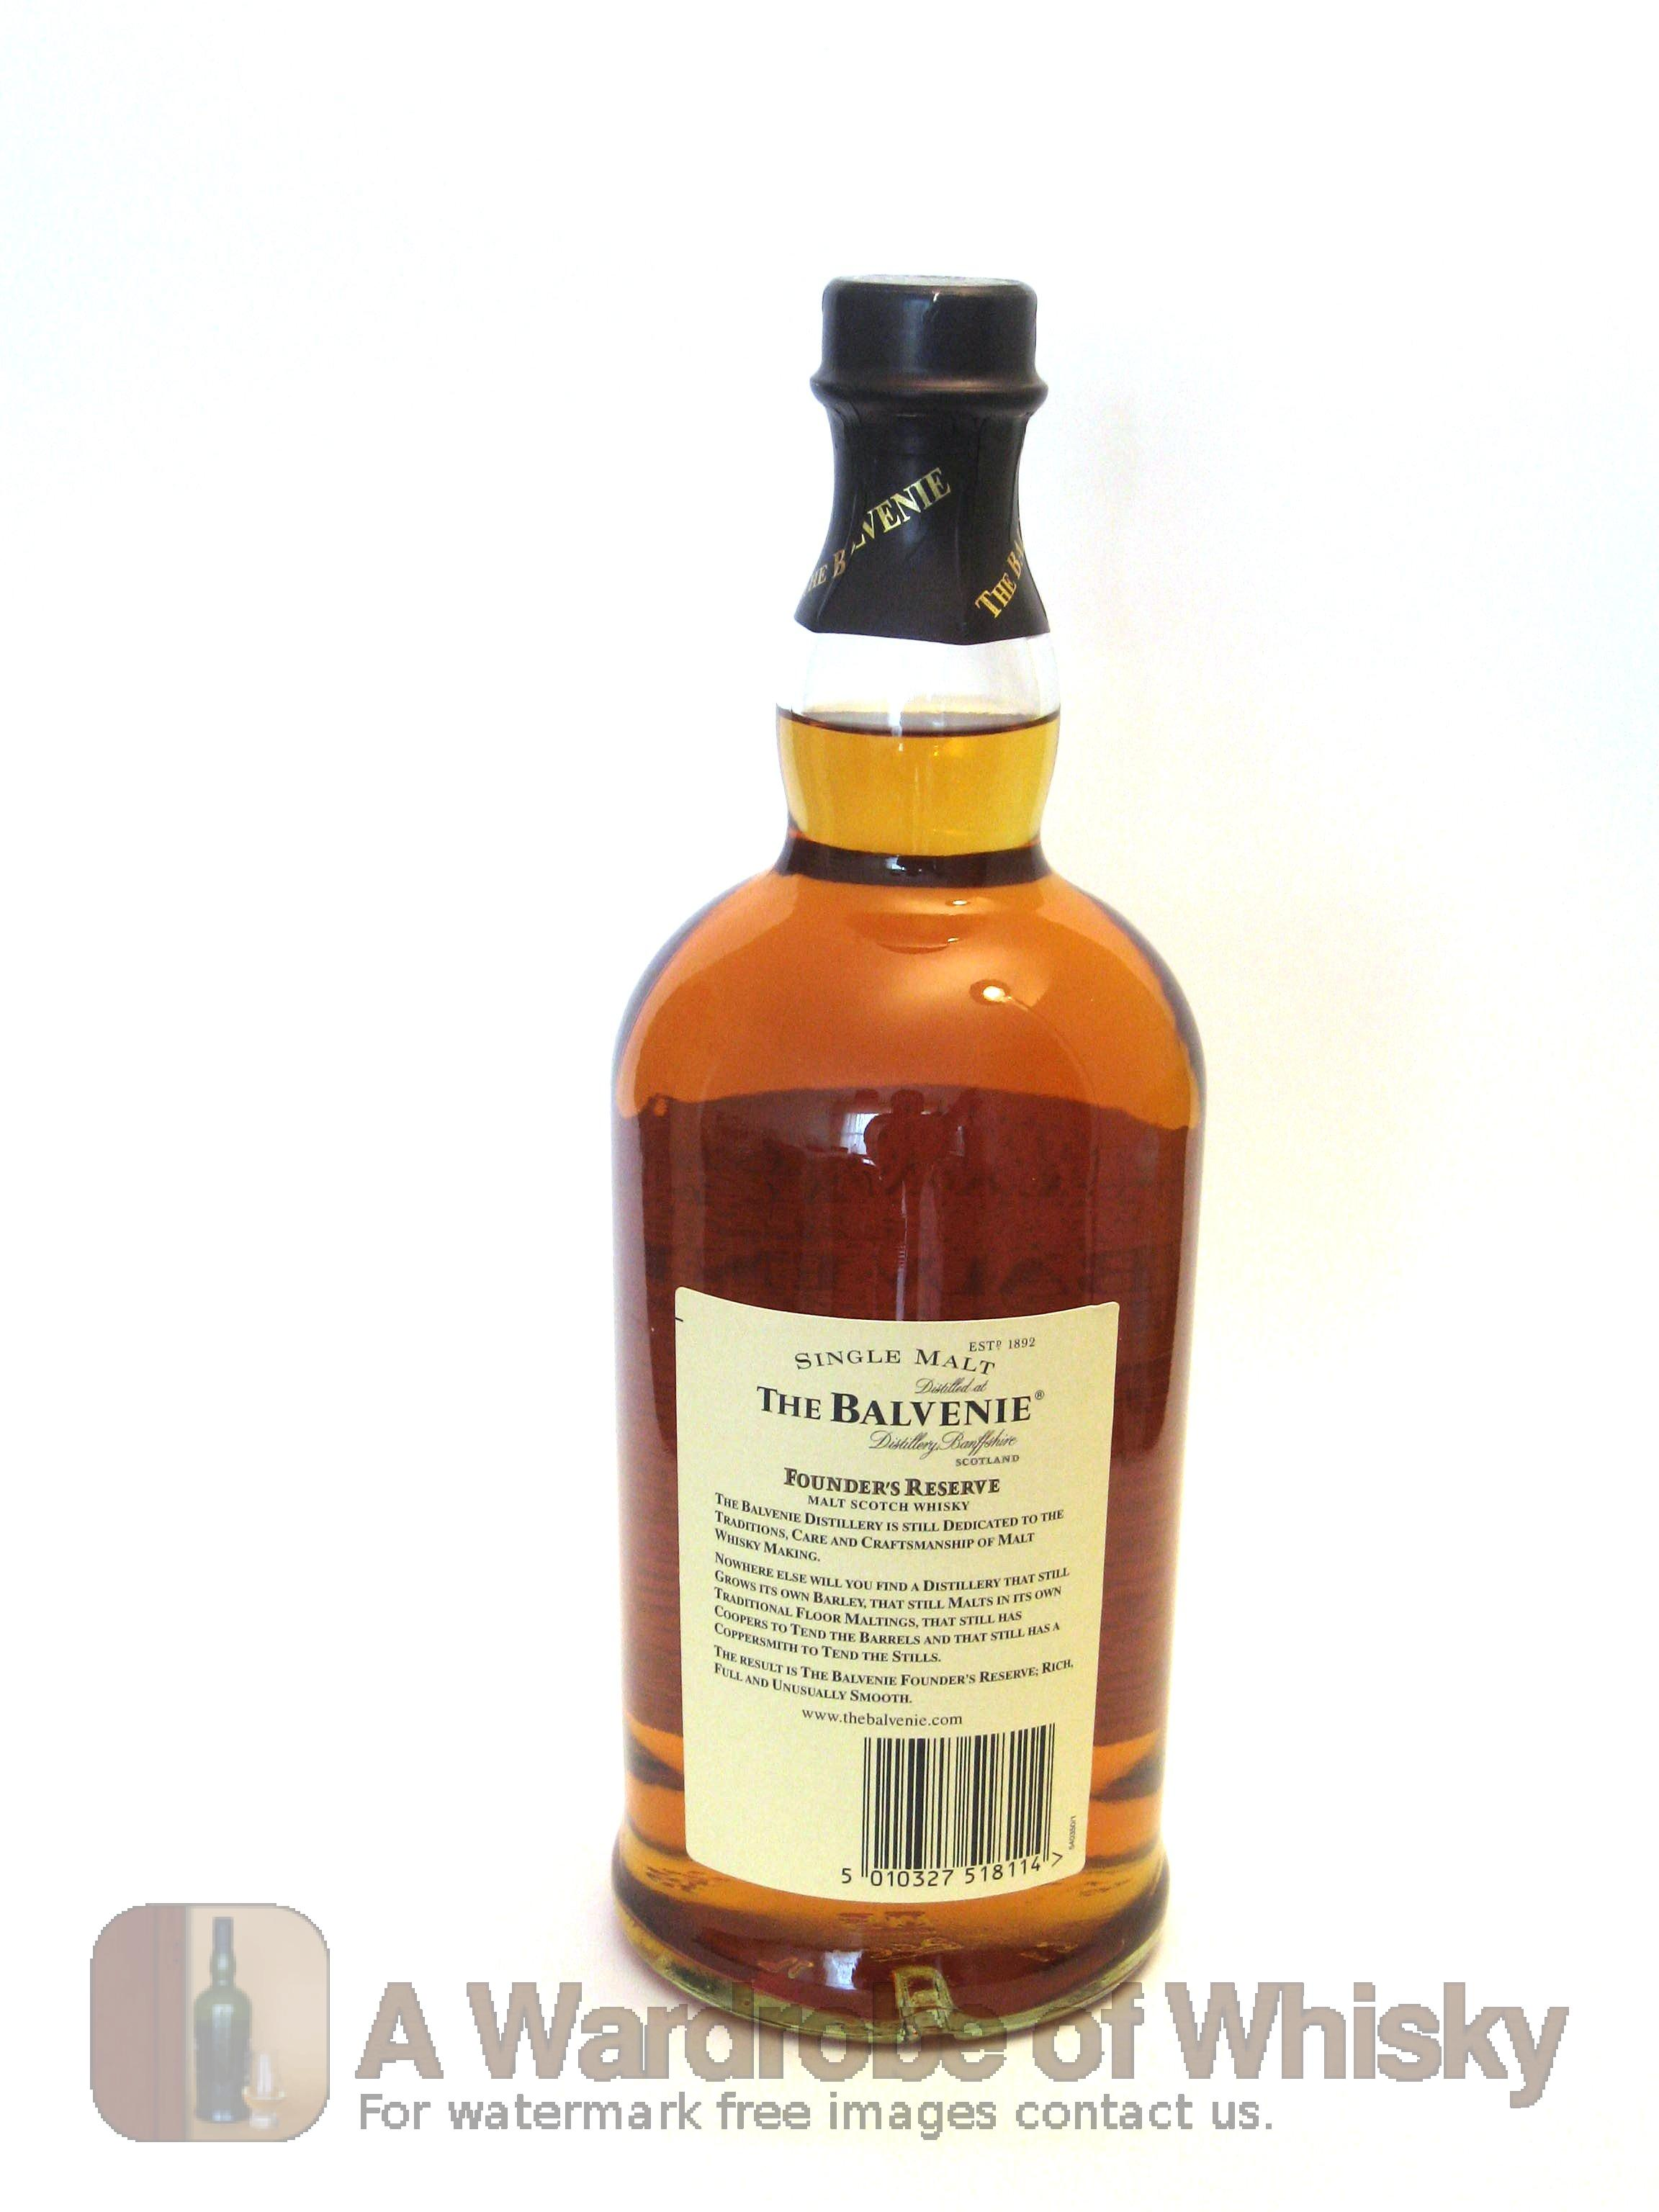 Balvenie single malt founders reserve